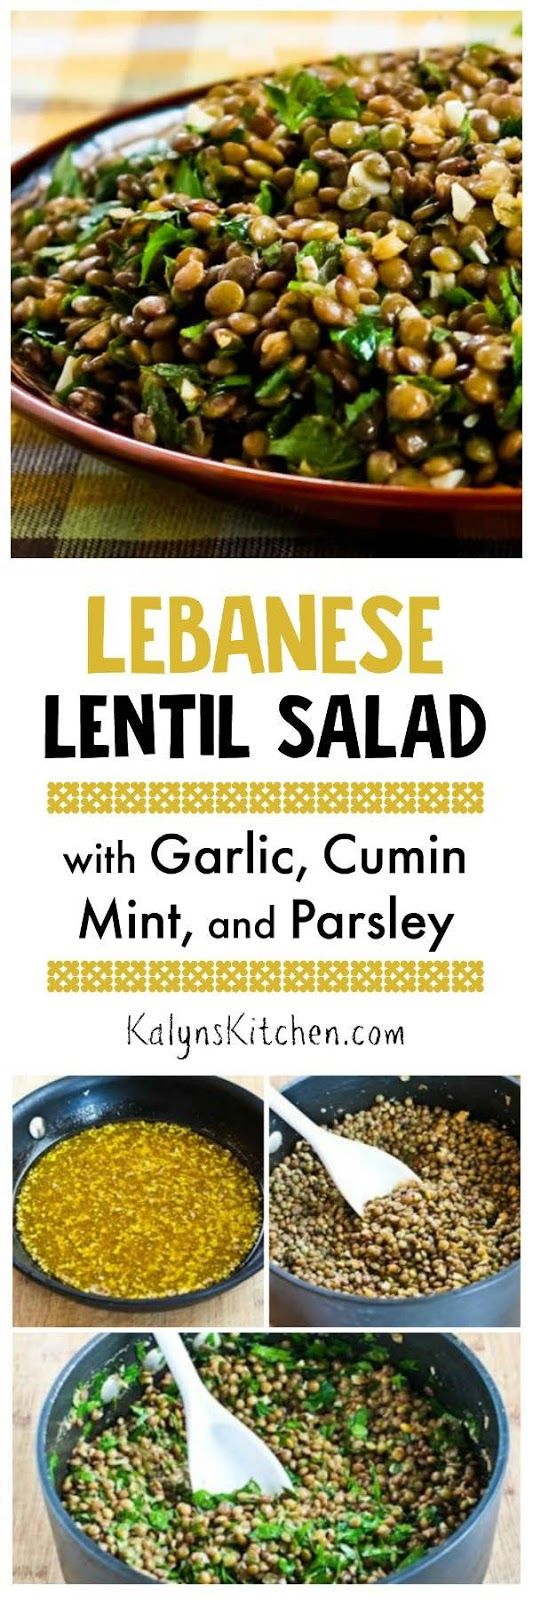 Lebanese Lentil Salad with Garlic, Cumin, Mint, and Parsley; I love this as a side dish for something cooked on the grill! [found on KalynsKitchen.com]